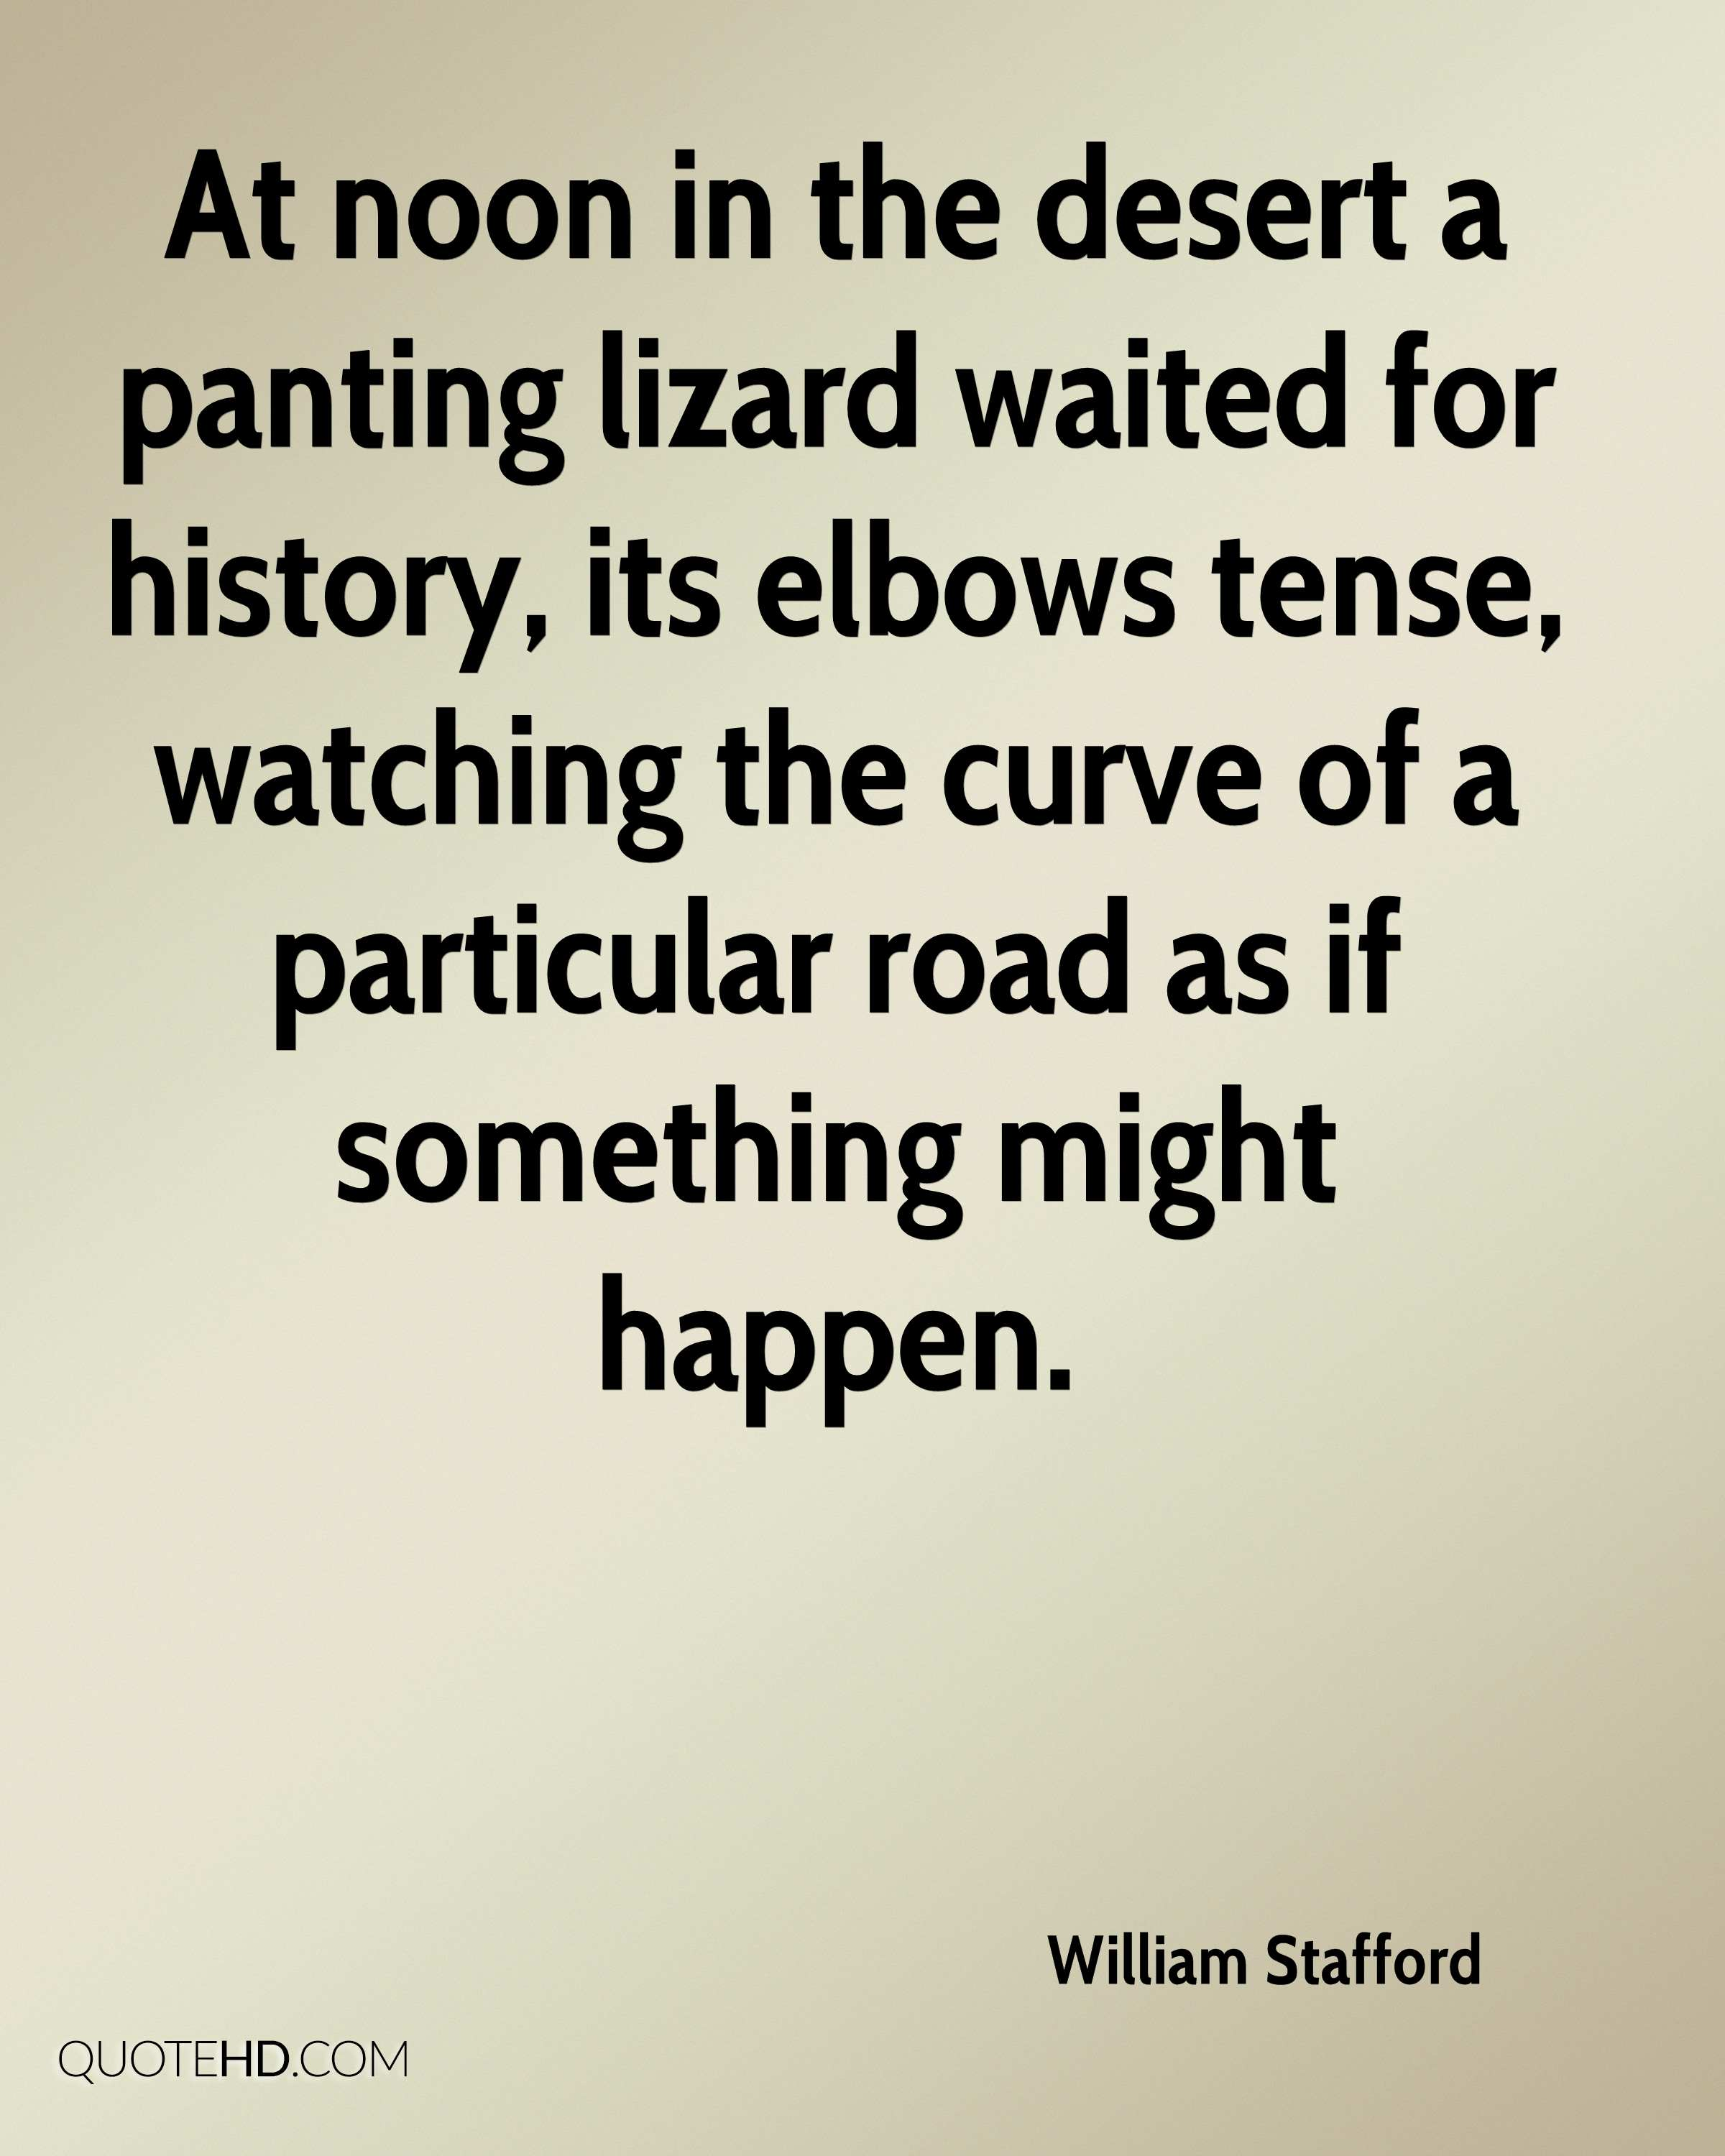 At noon in the desert a panting lizard waited for history, its elbows tense, watching the curve of a particular road as if something might happen.